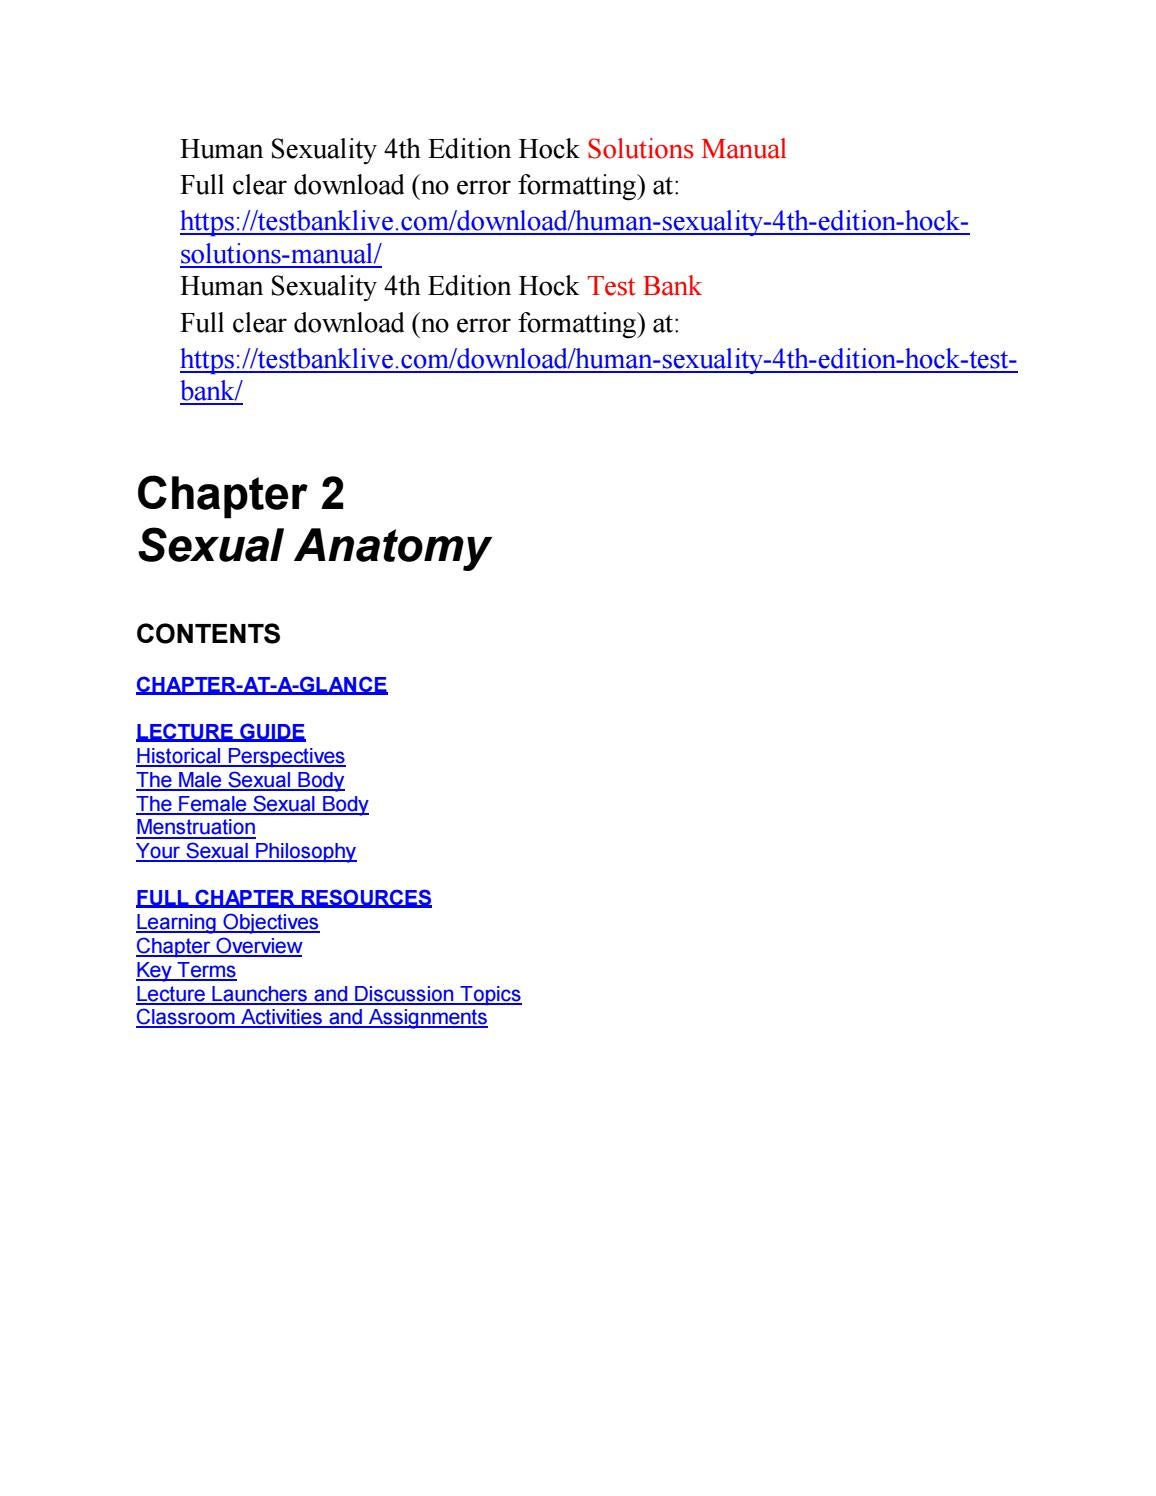 Human sexuality 4th edition hock solutions manual by Andrews172 - issuu